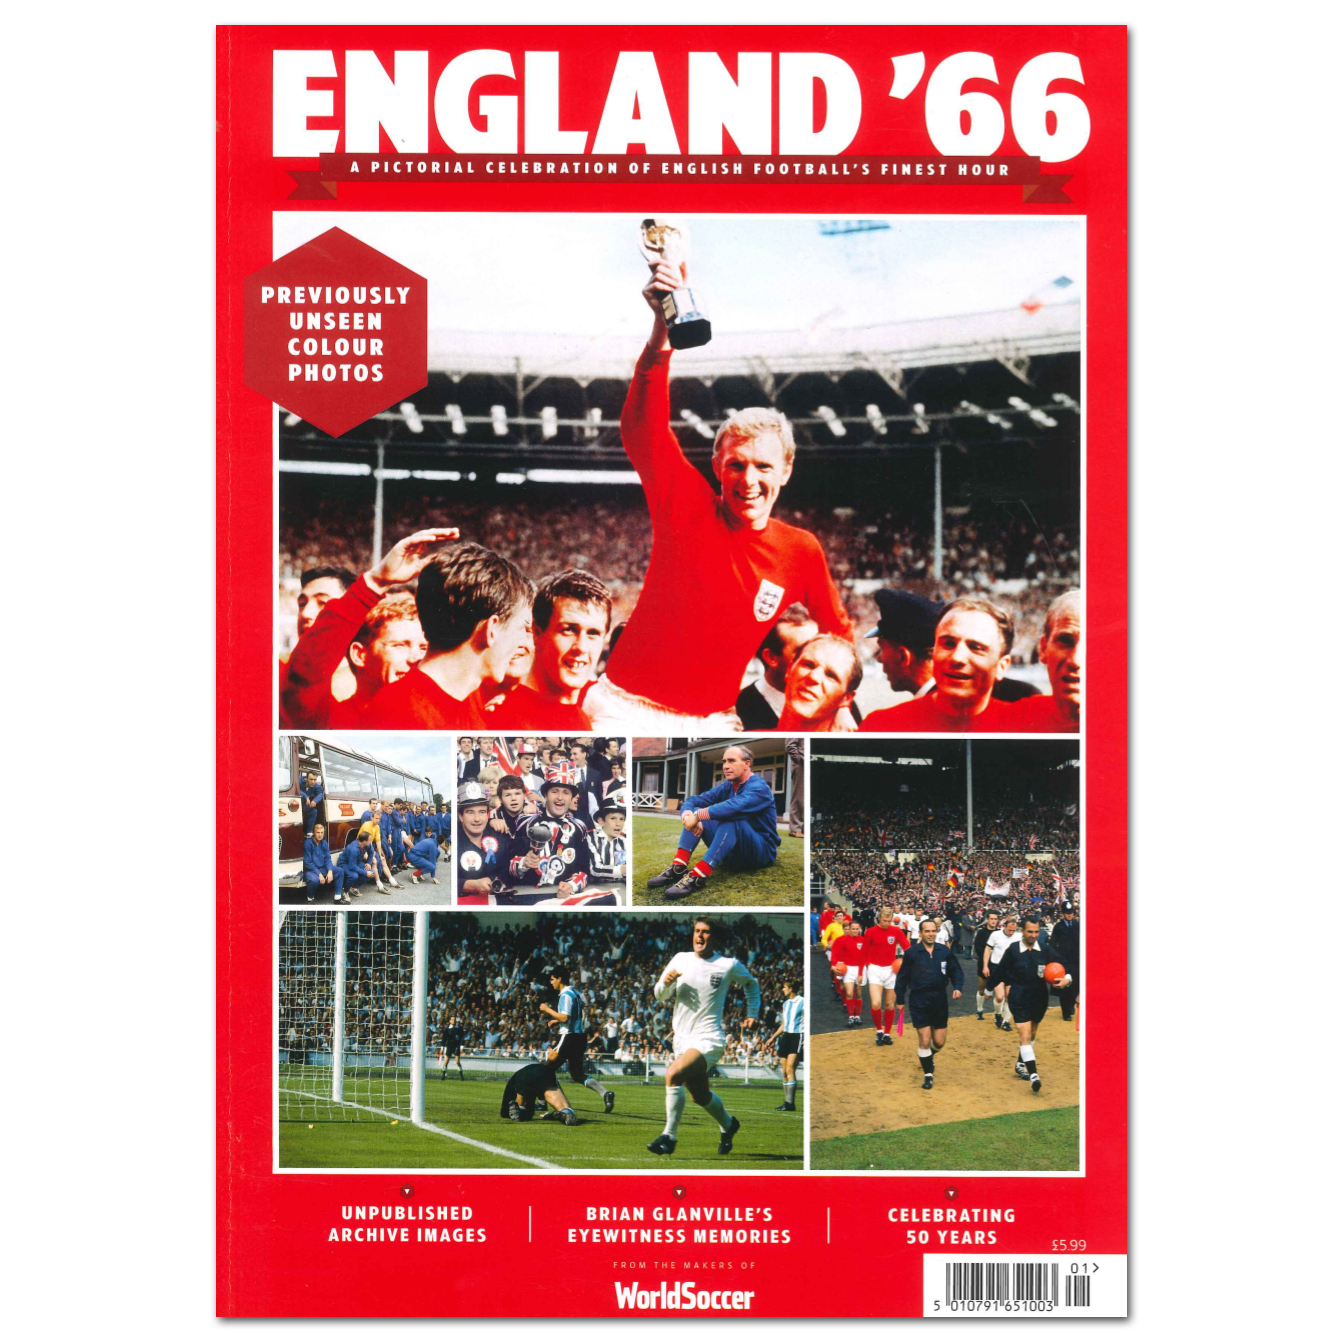 England '66 - A Pictorial Celebration